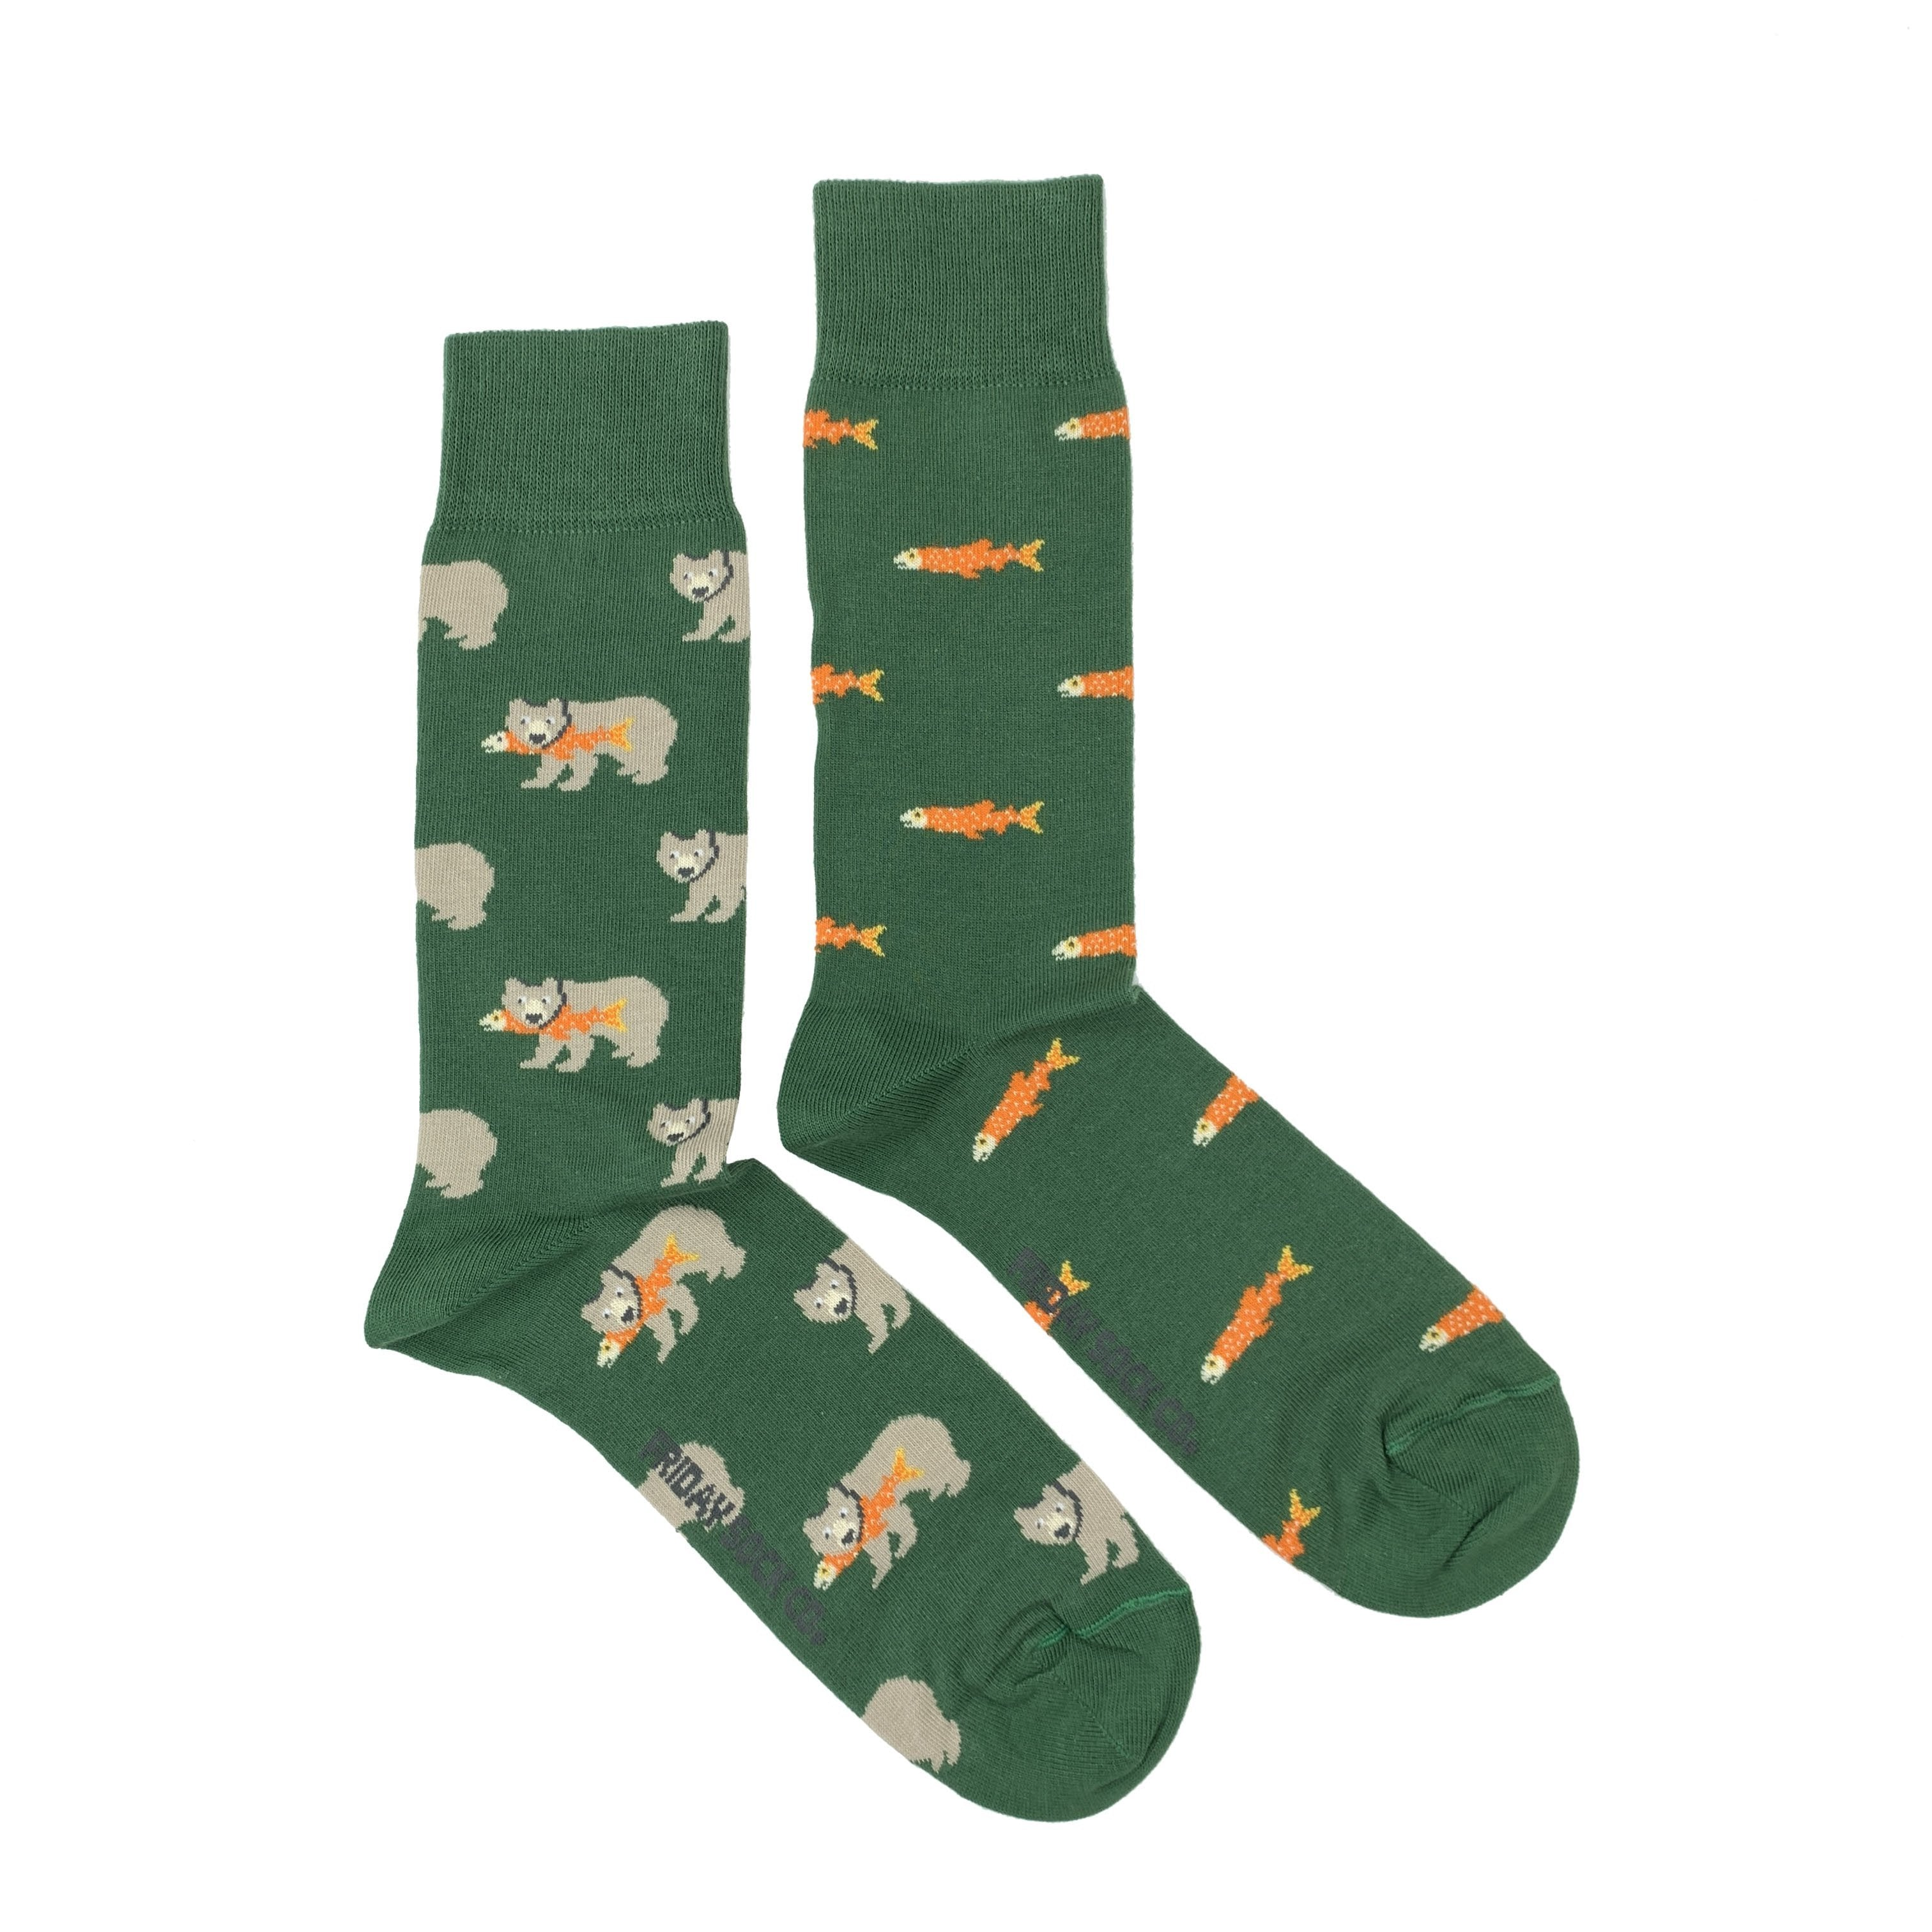 Men's Midcalf Socks - Grizzly Fish